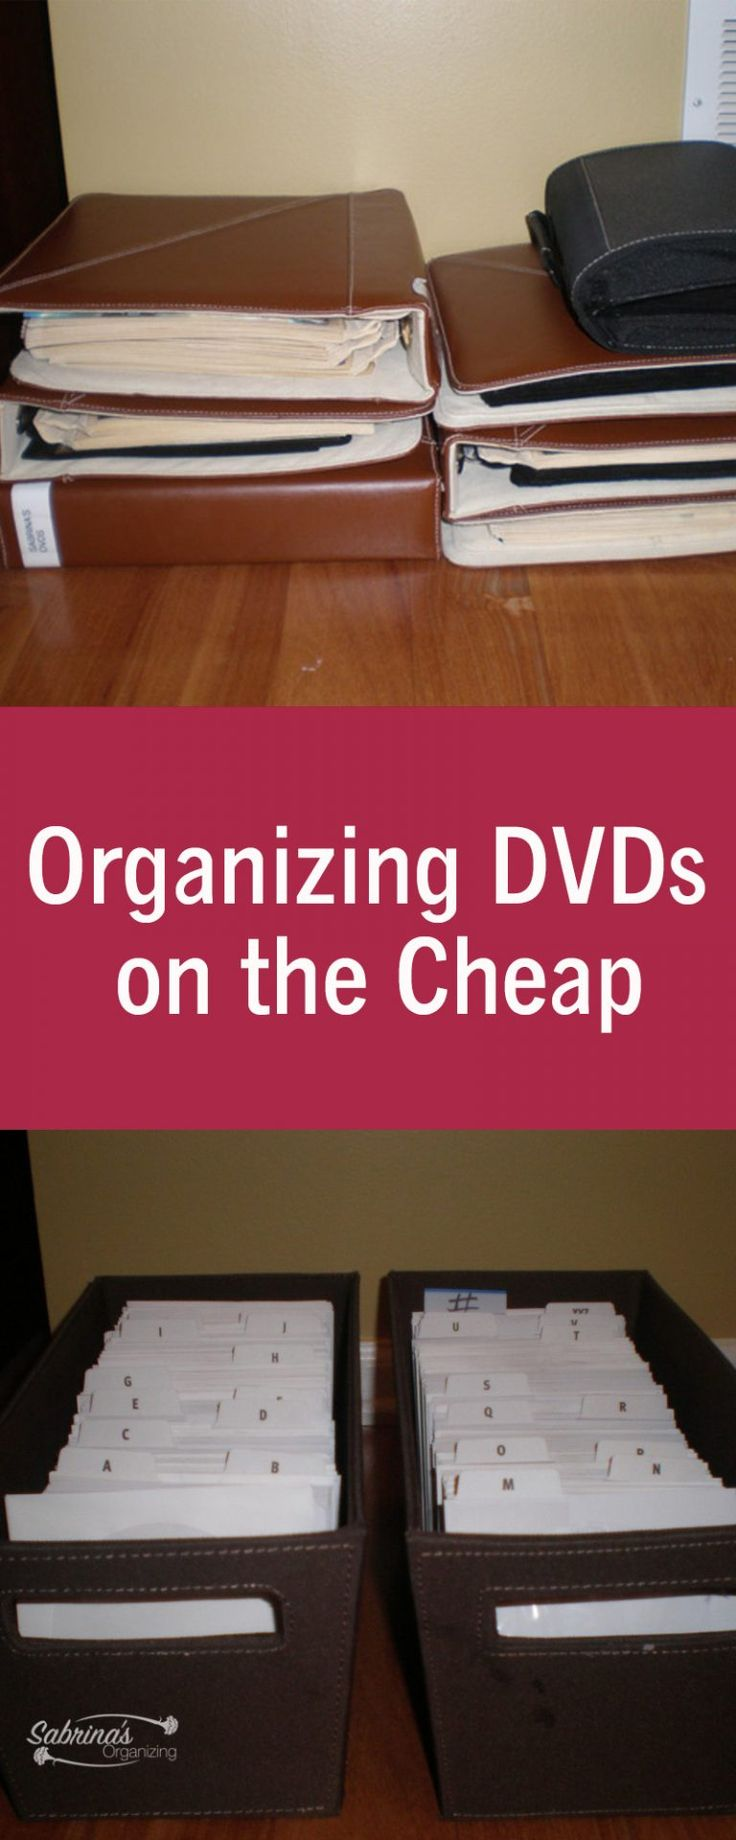 Organizing DVDs on the Cheap - entertainment center organization made easy. CDs dvds affordable organization